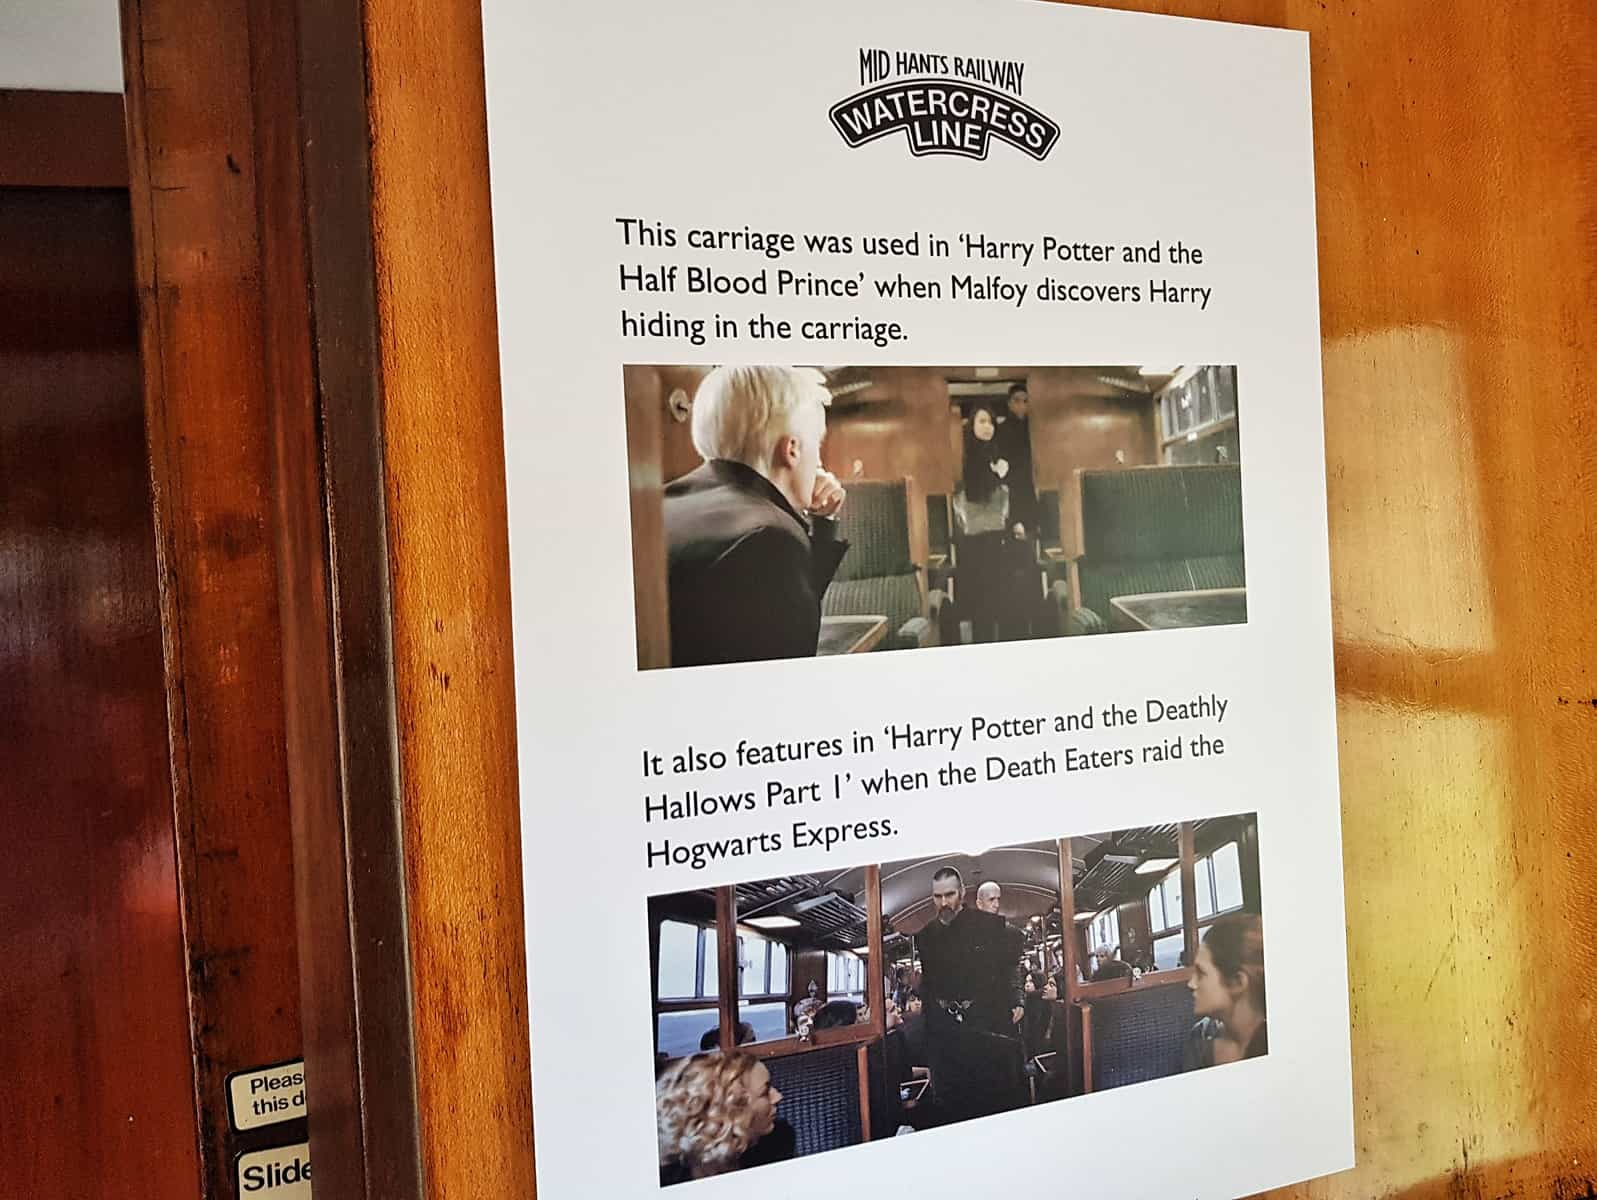 Watercress Line sign about Harry Potter train carriage